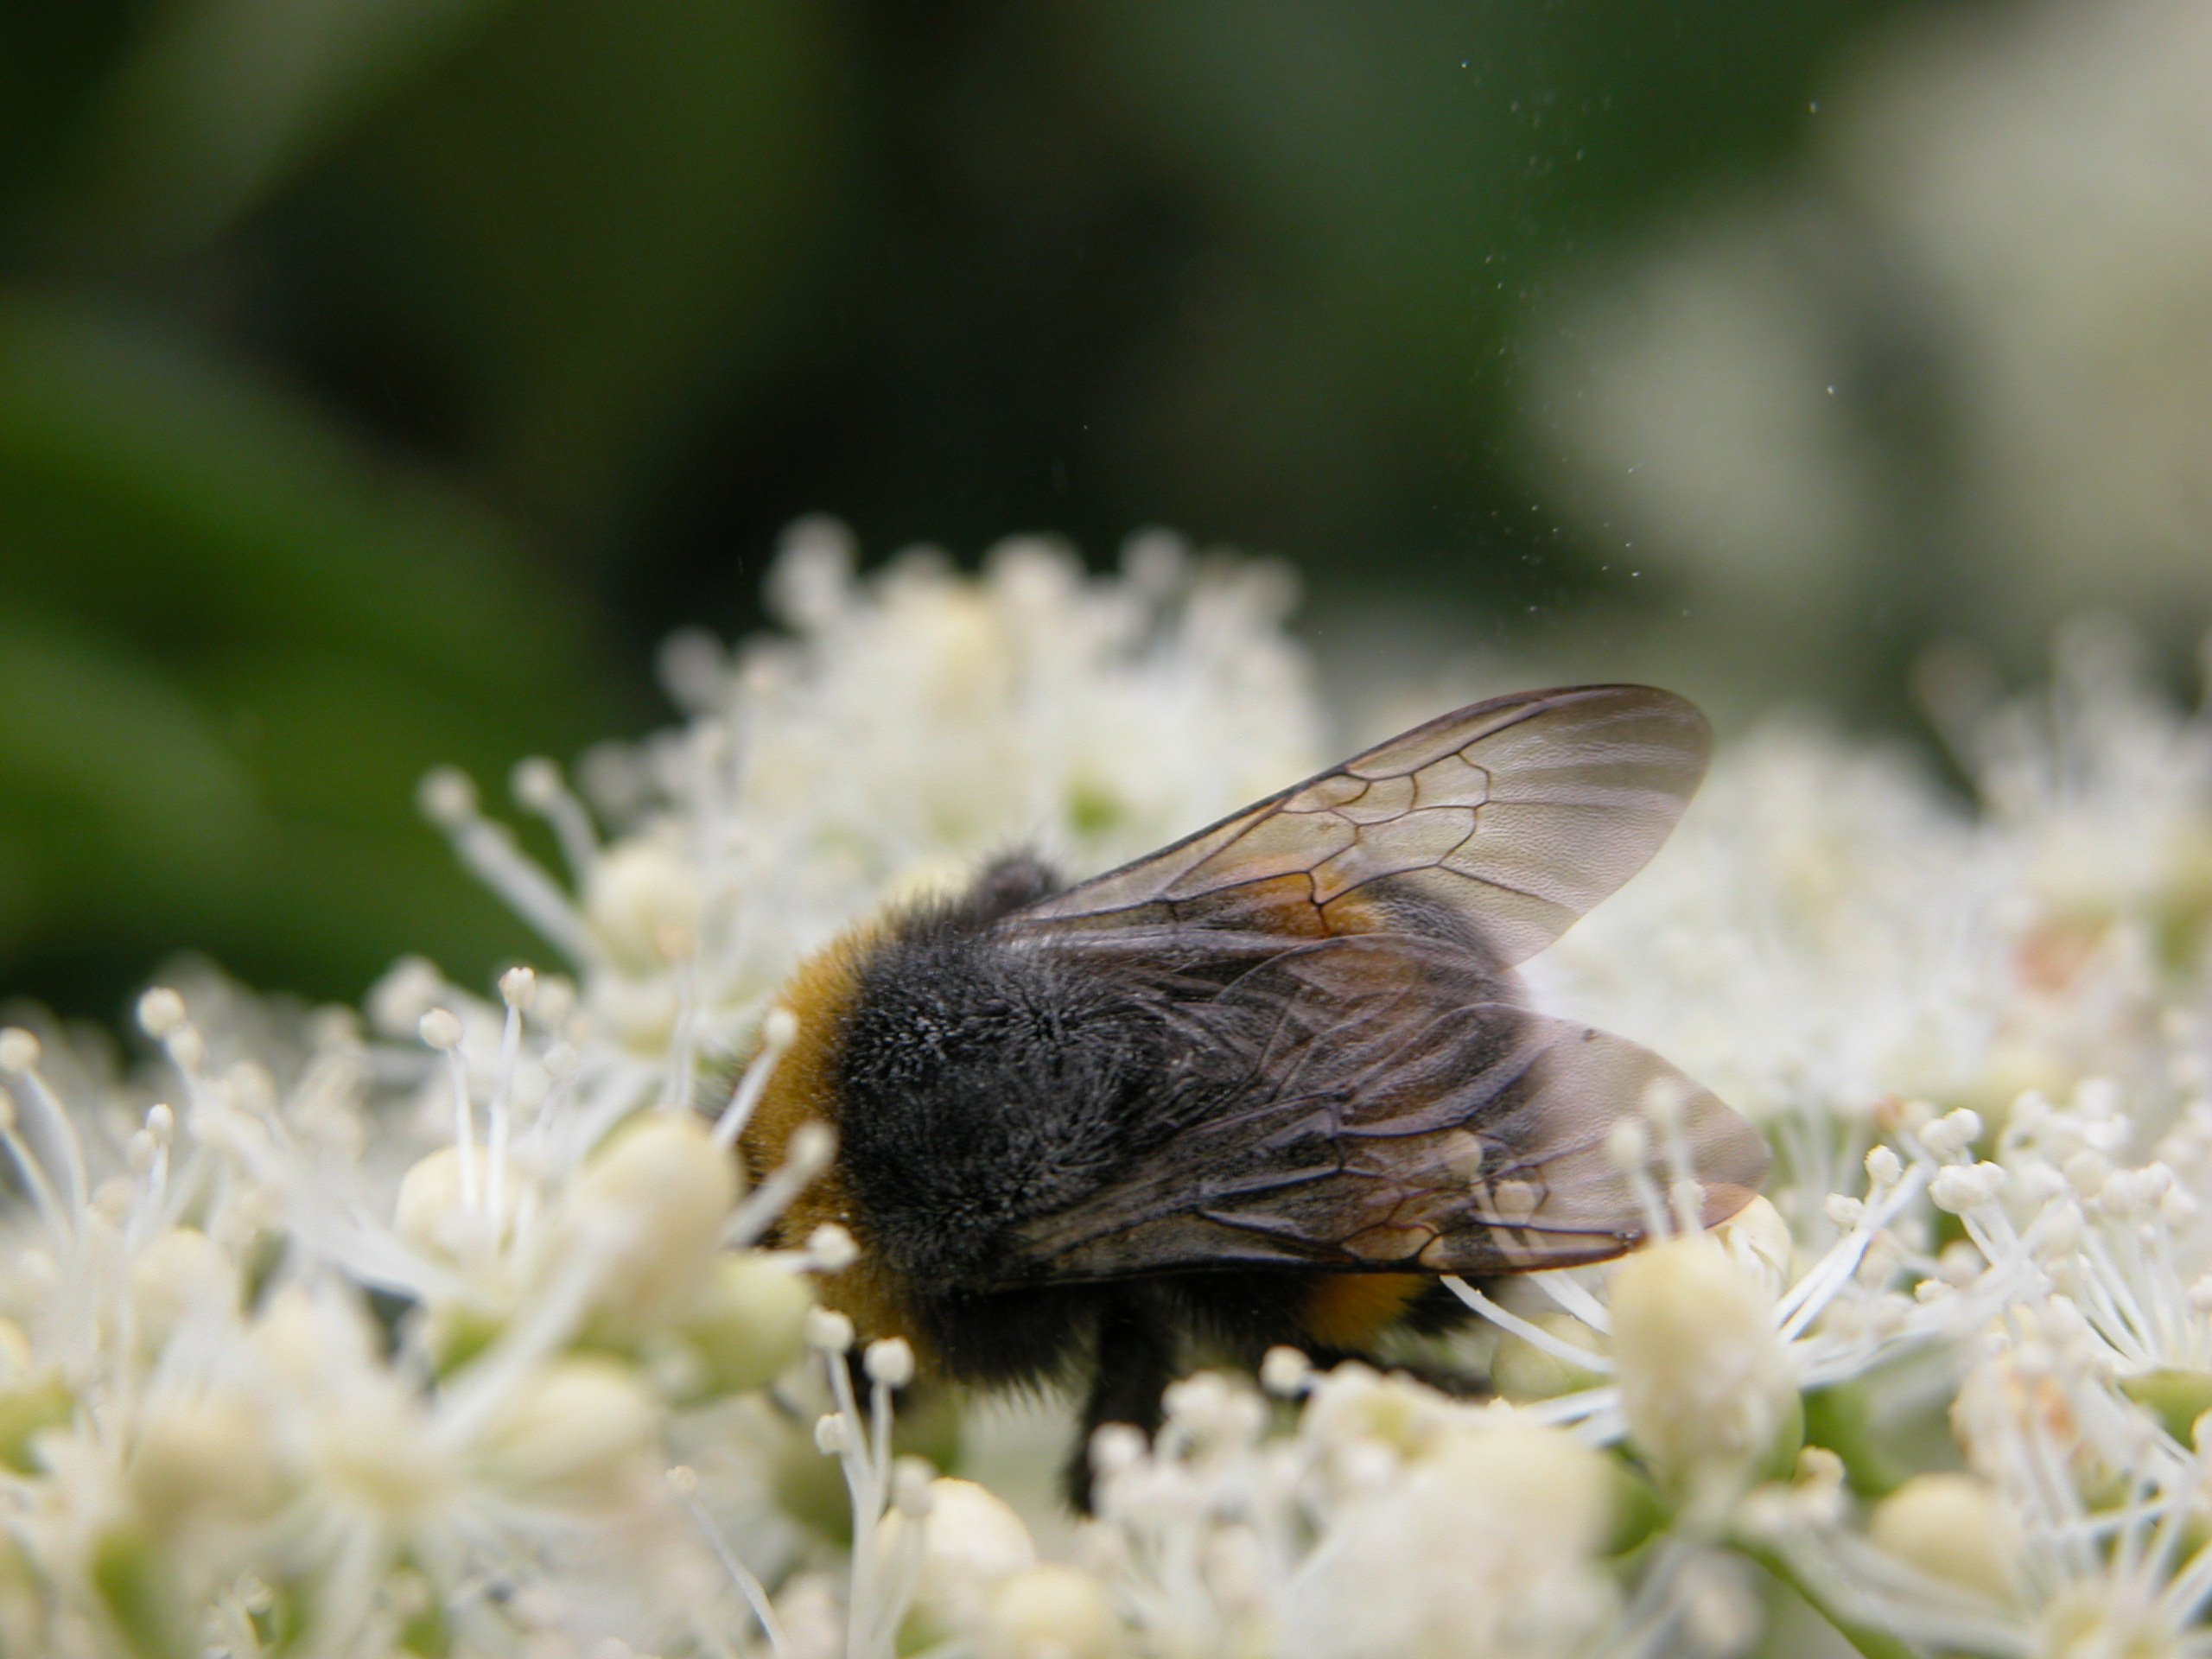 bee bumble bumblebee pollen drinking from a flower covered in wings dark hairs insect